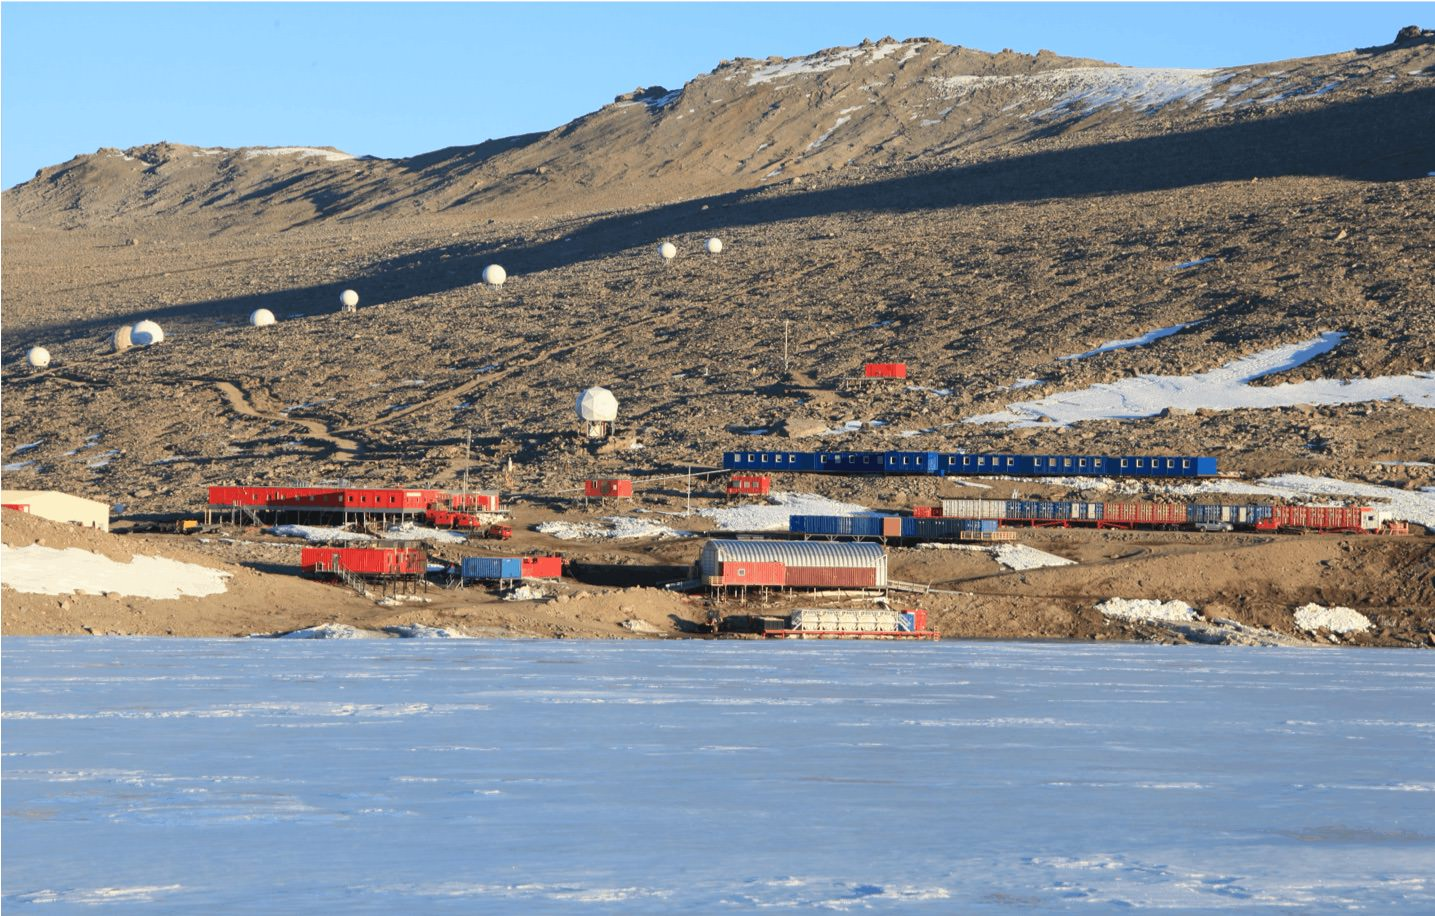 Troll Research Station in Antarctica